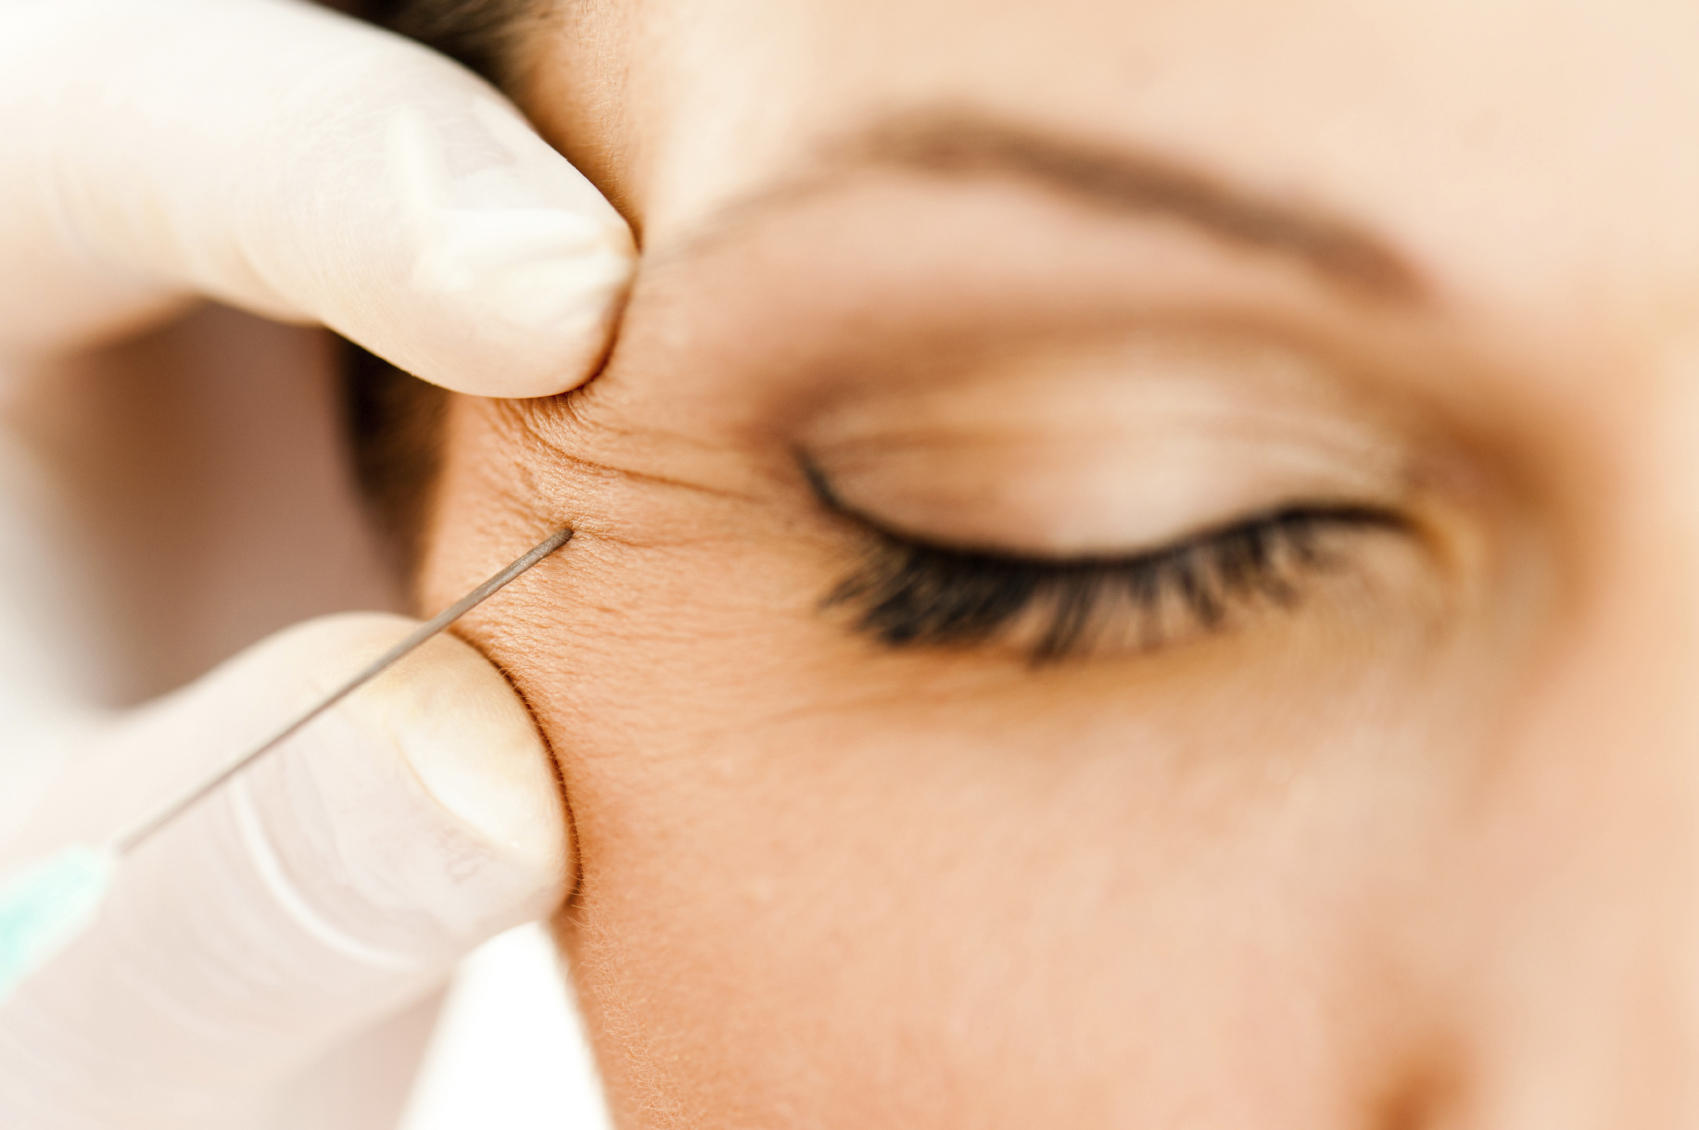 Macro closeup of botox injection near eye